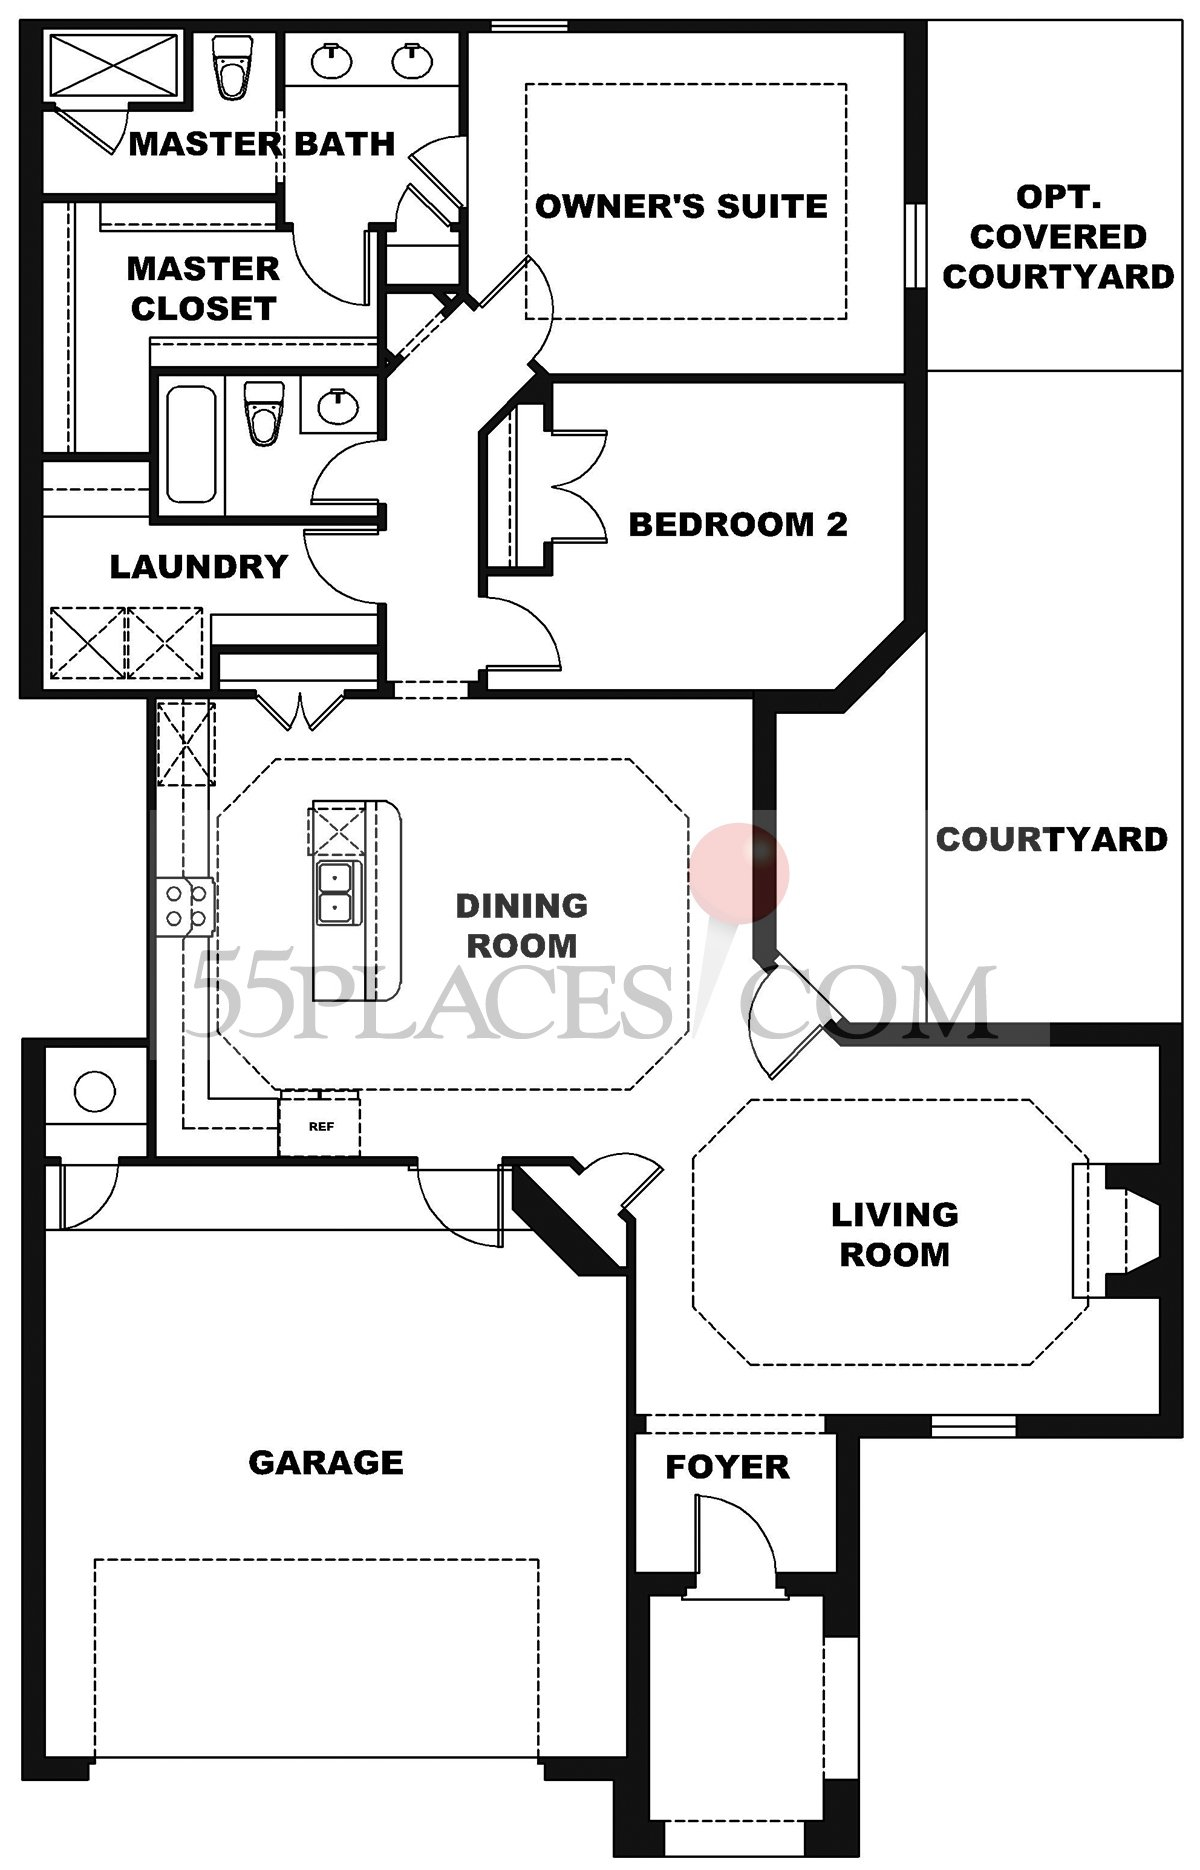 epcon_whiteoakranch_palazzo Palazzo Floor Plan For House Builders on construction floor plans, furniture floor plans, restaurants floor plans, hotels floor plans, interior design floor plans, schools floor plans, banks floor plans,